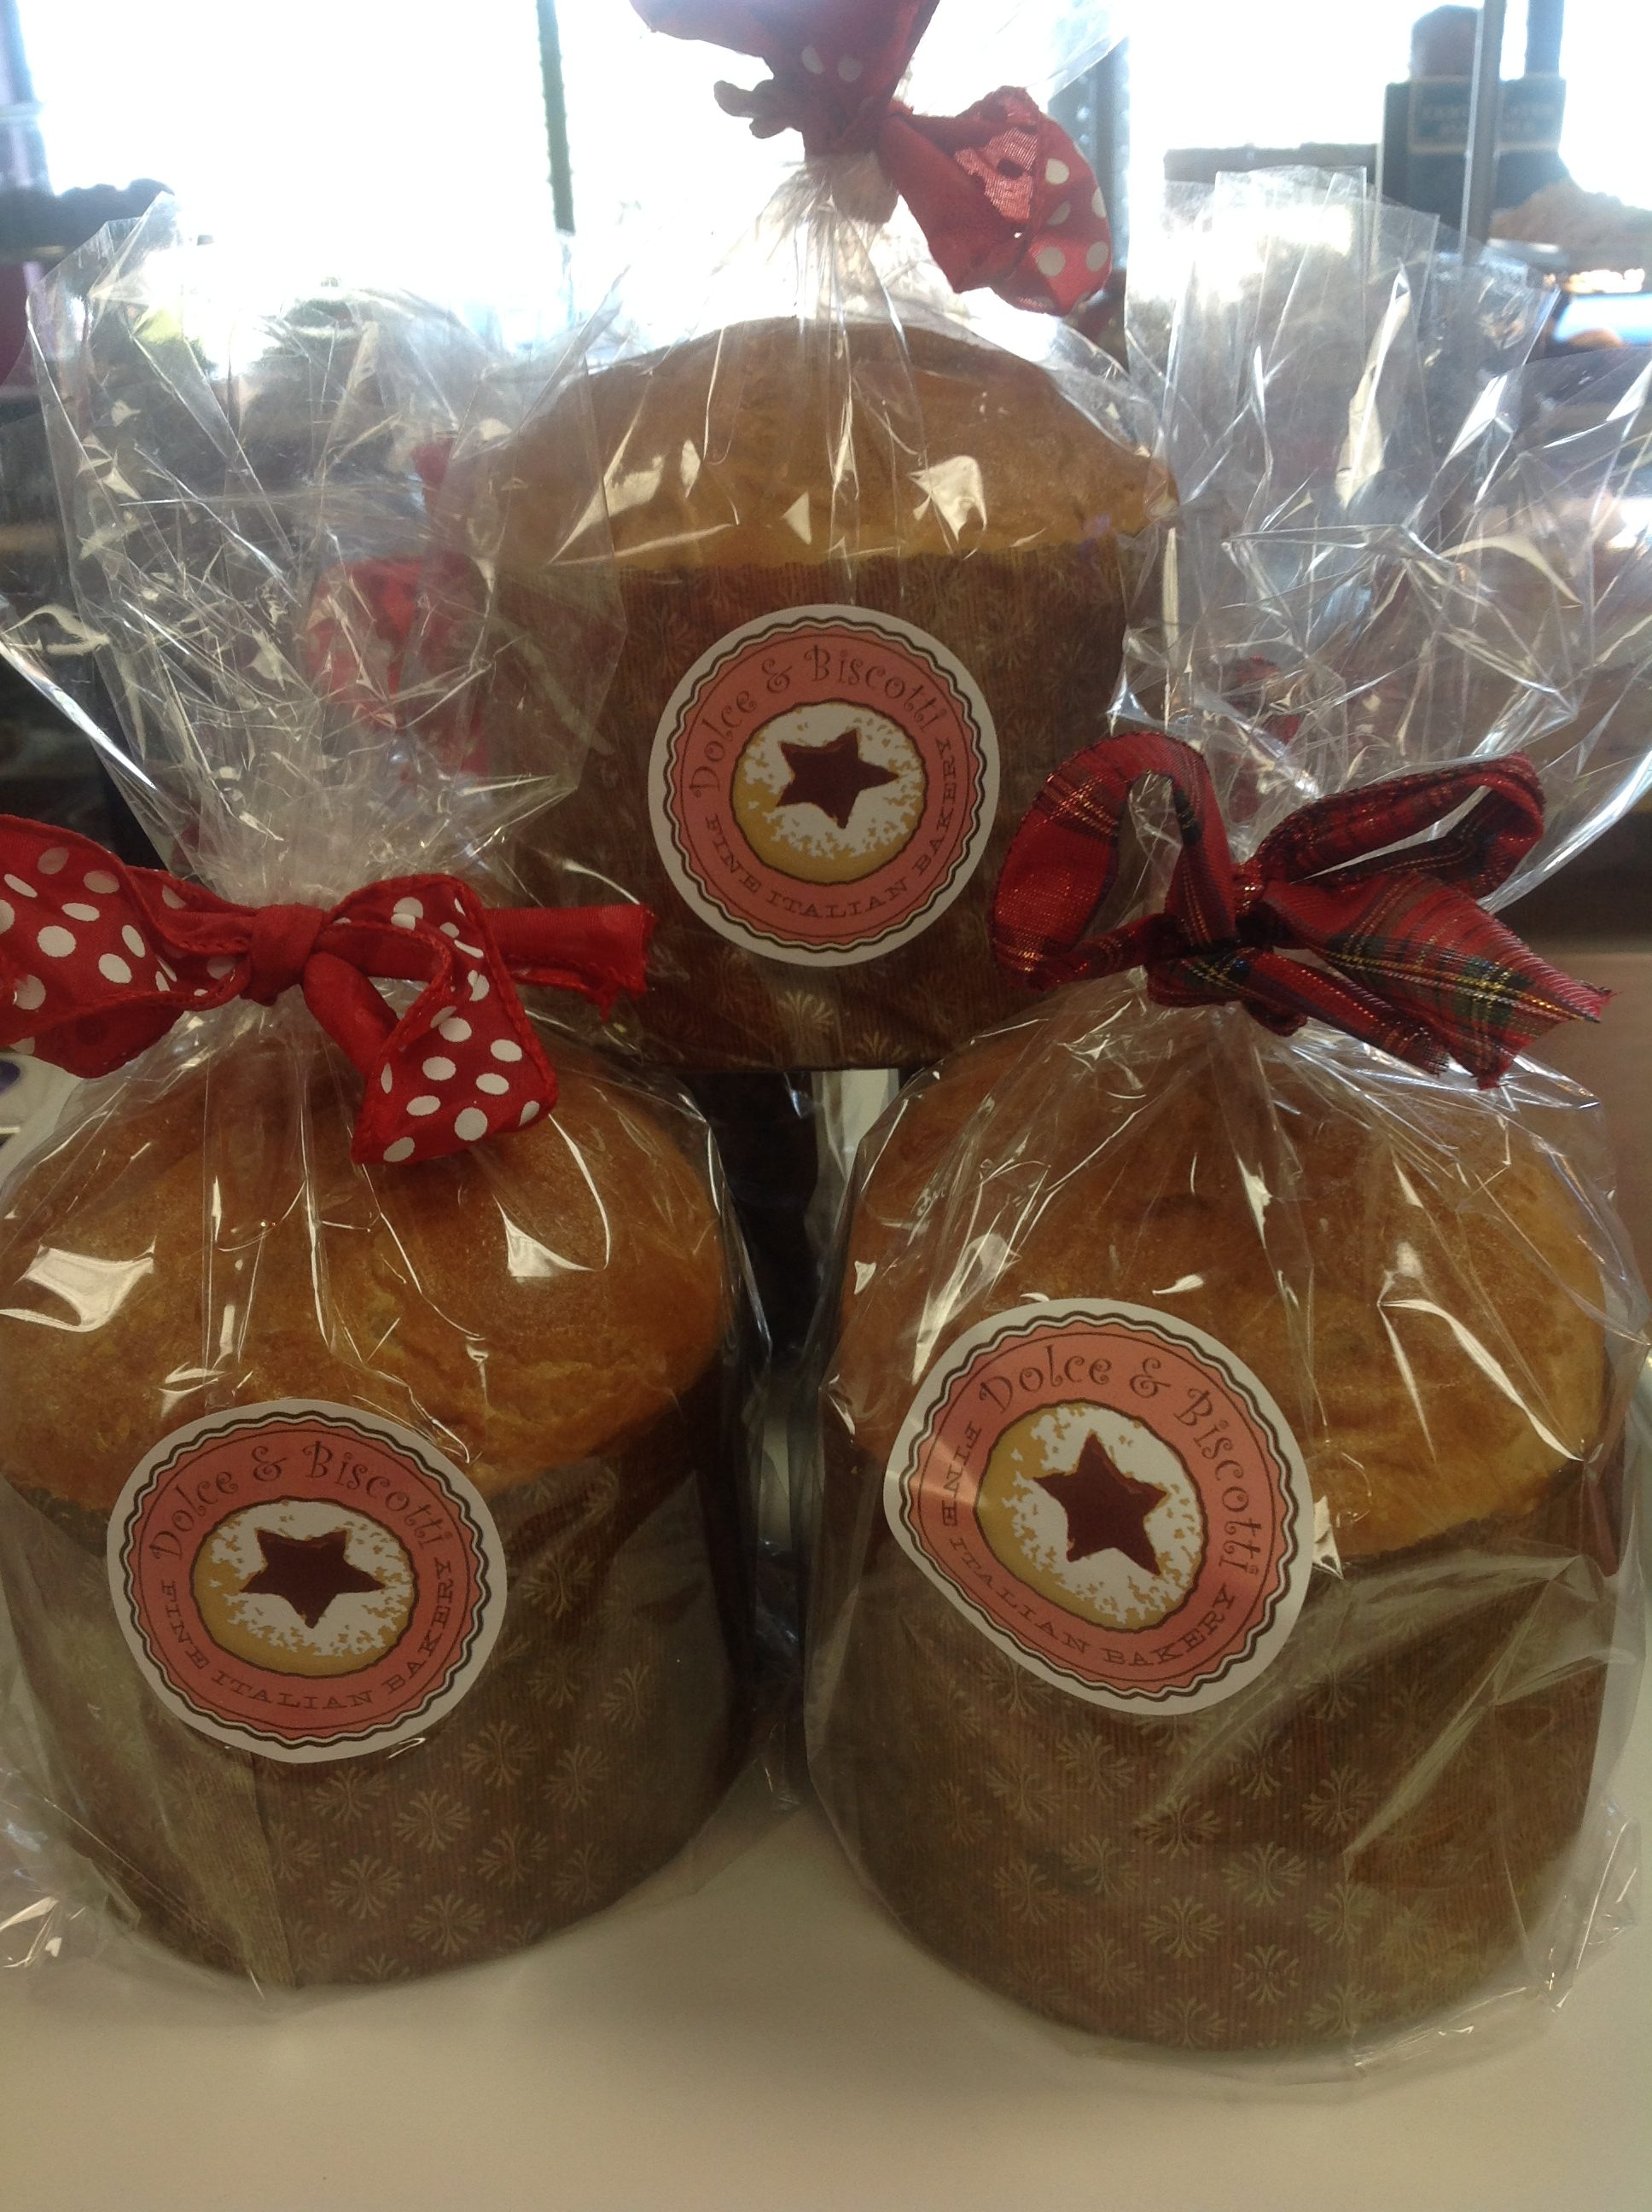 Panettone Bread at Dolce and Biscotti Italian Bakery